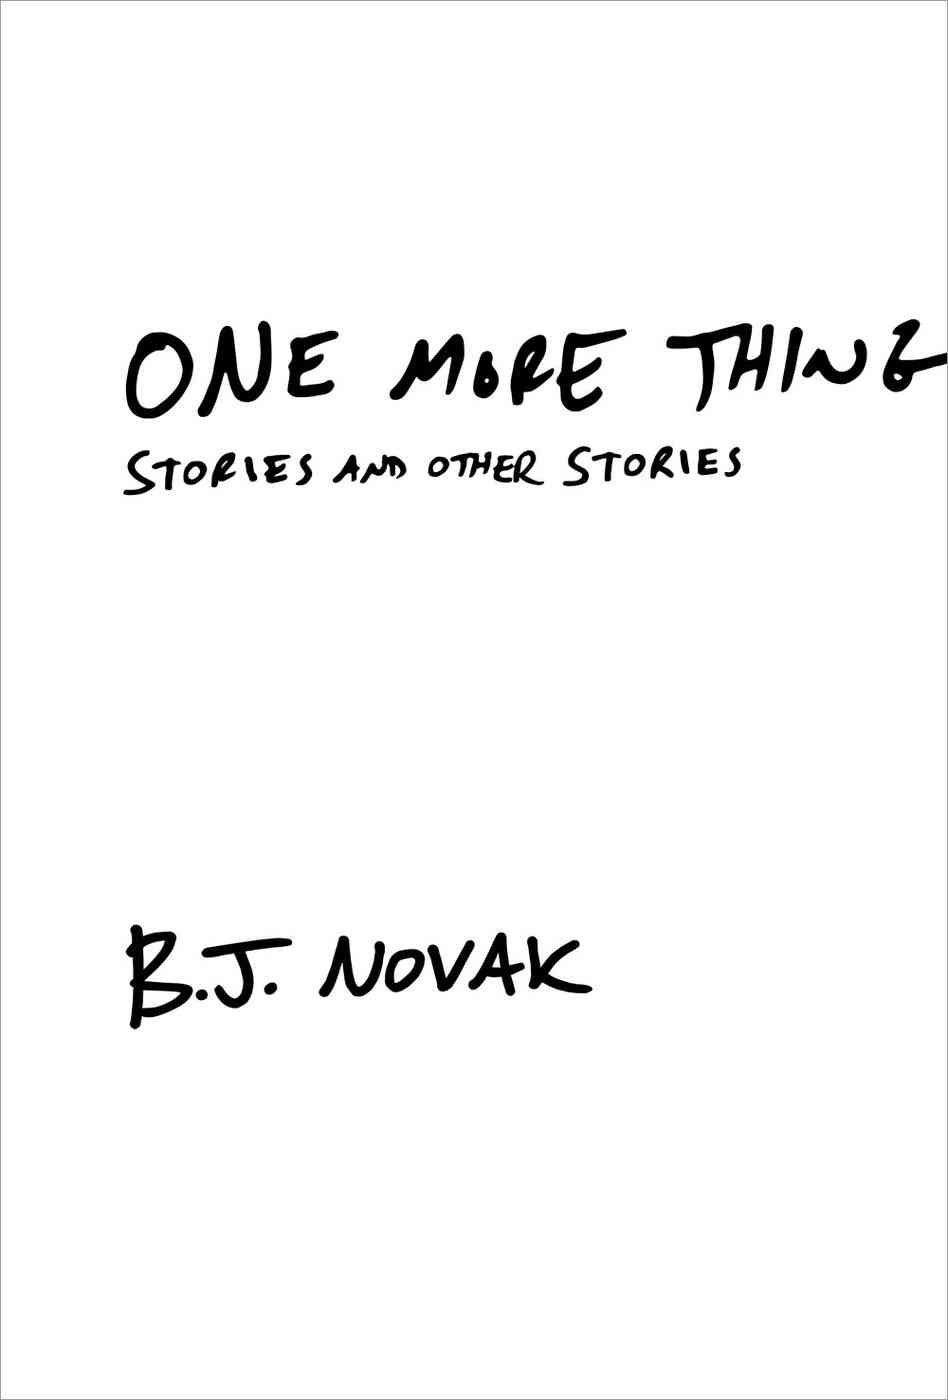 One More Thing by B.J. Novak